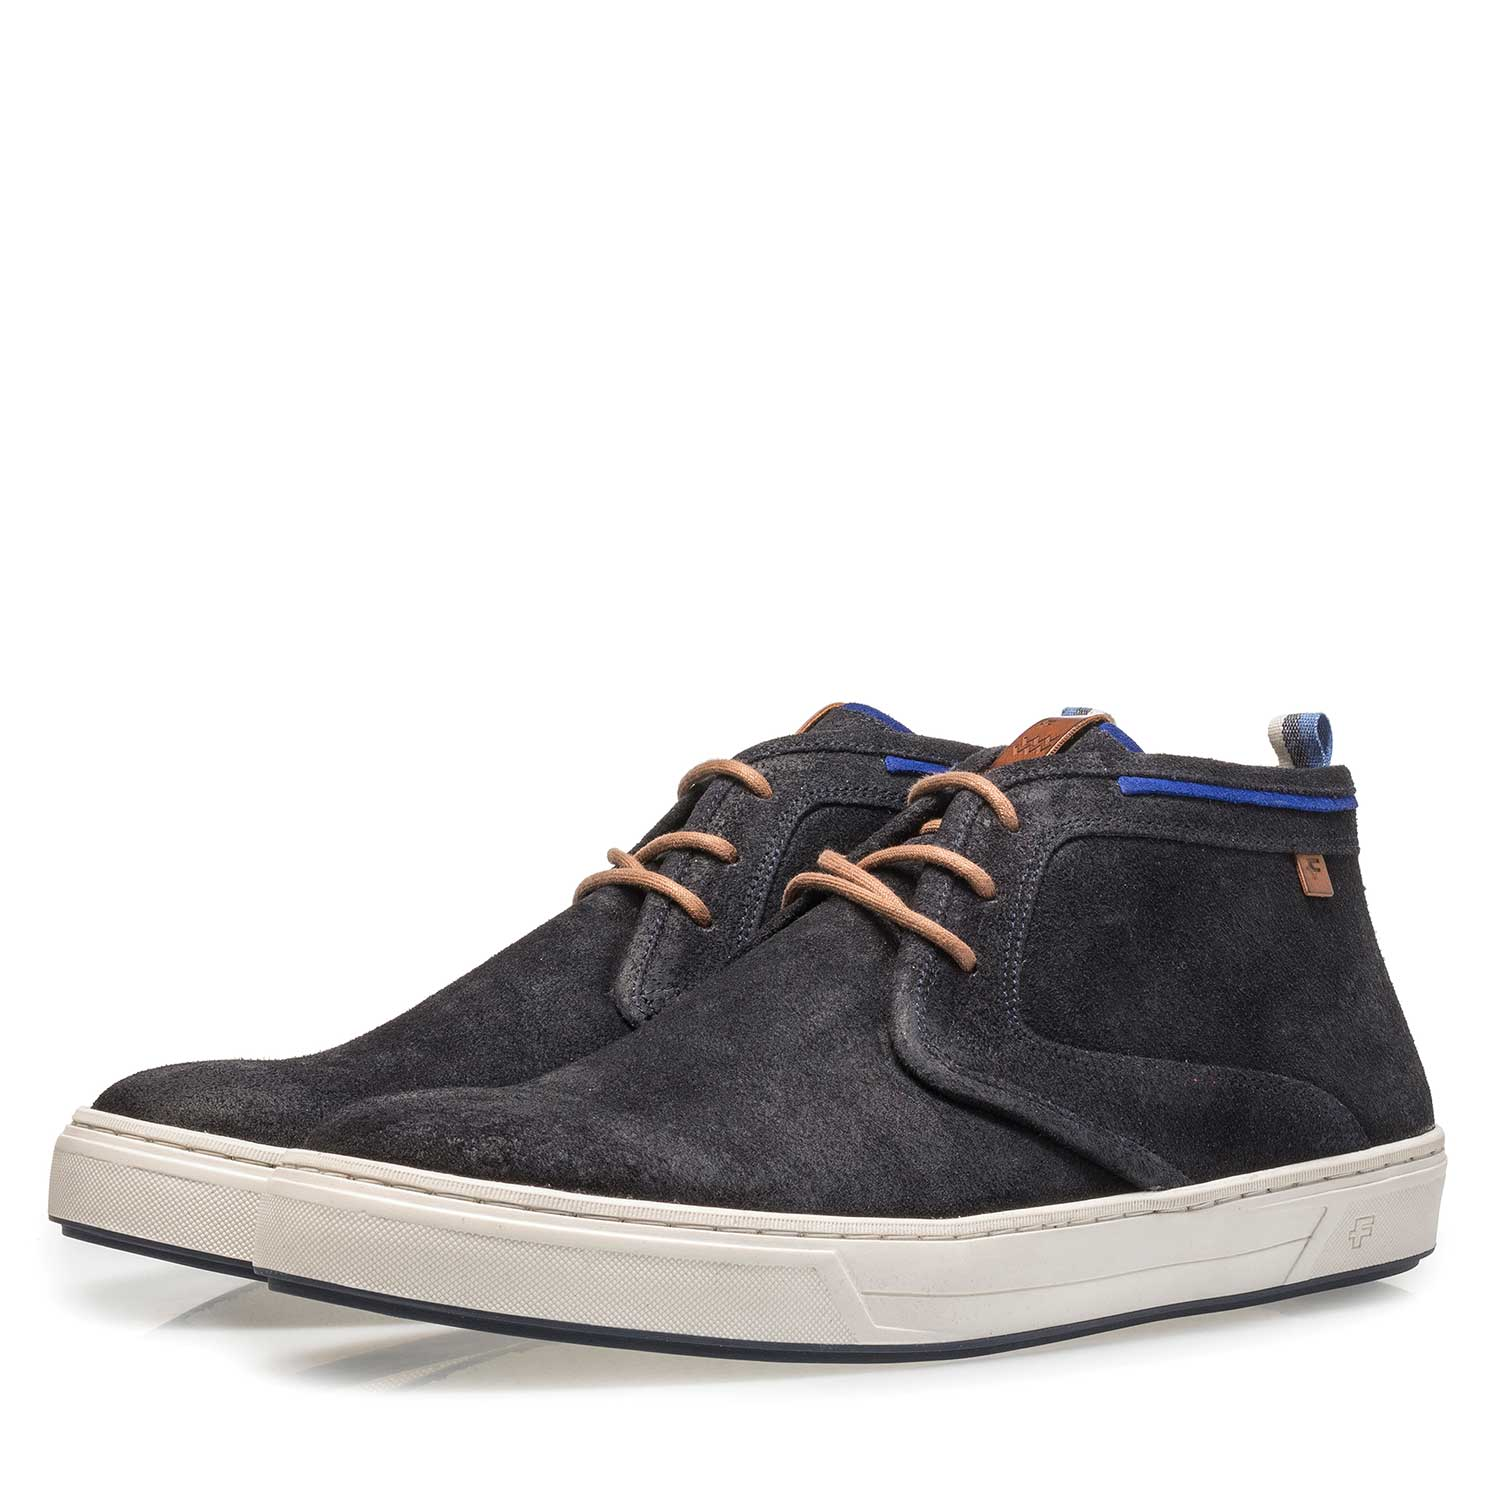 10466/10 - Dark blue suede lace boot